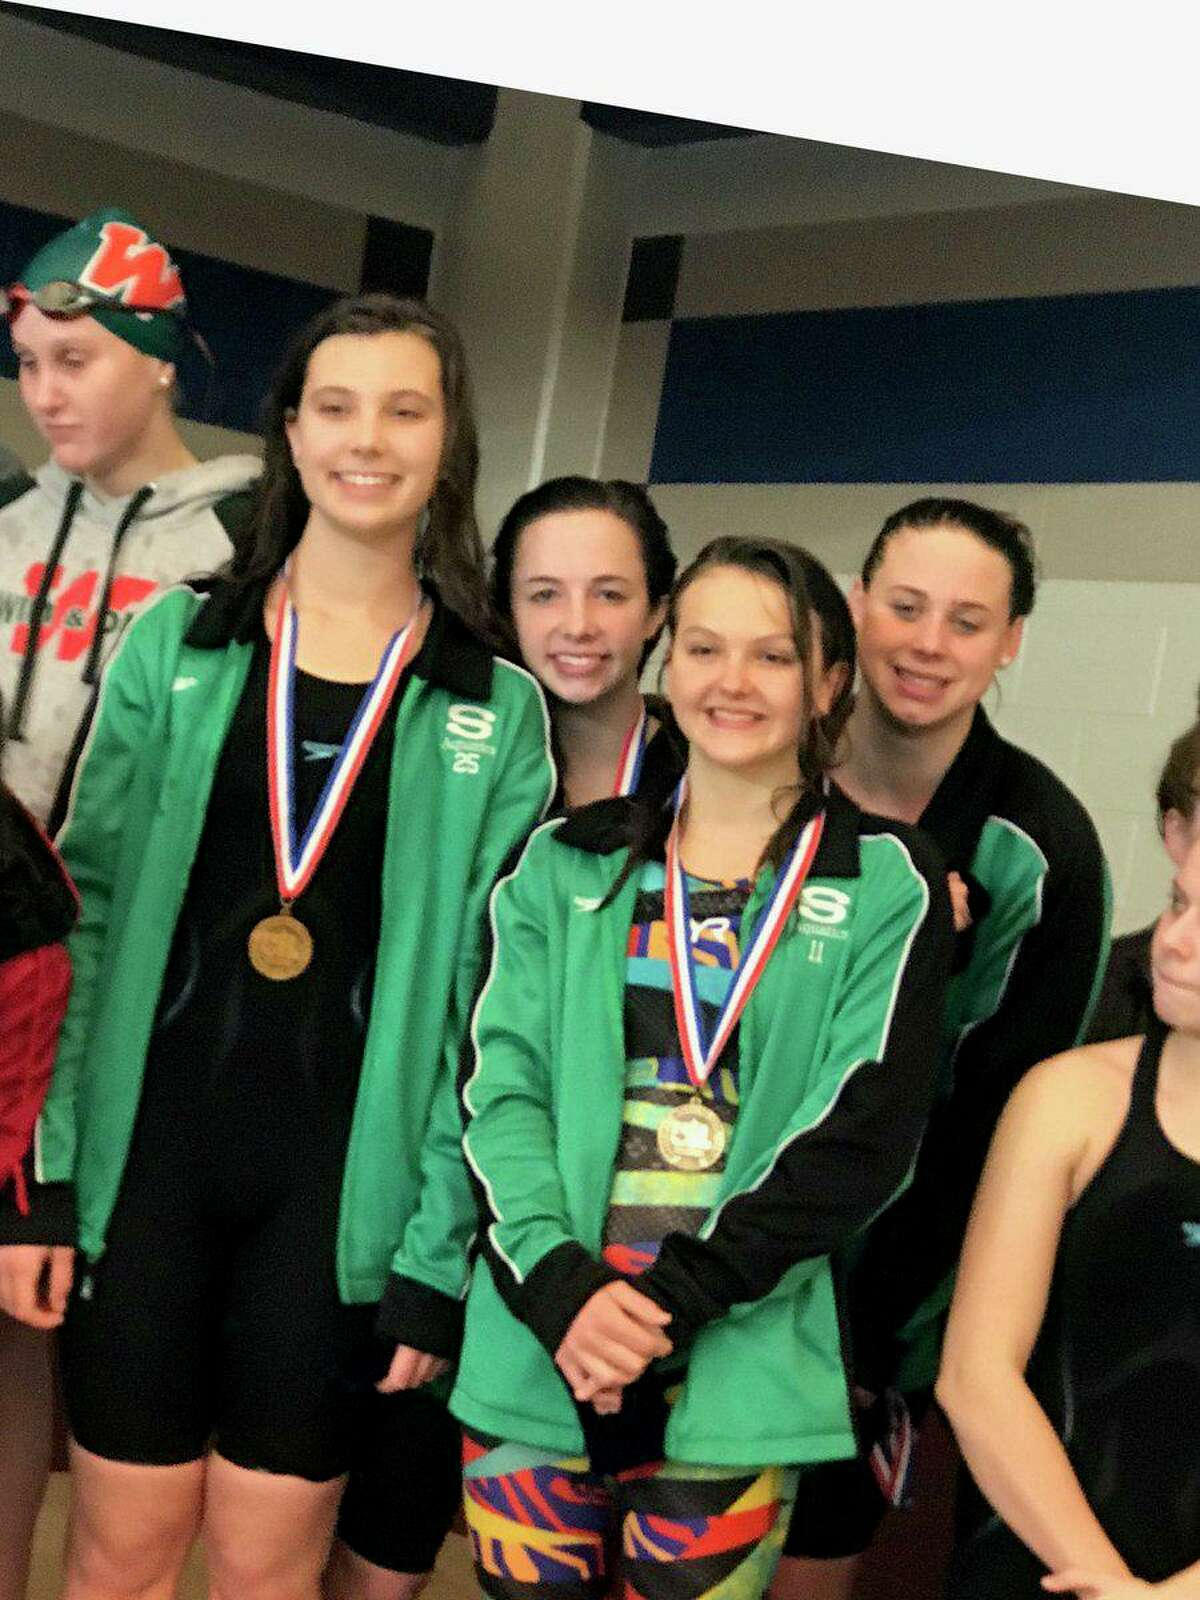 The Stratford girls 200-yard medley relay of Emma Venghaus, Kara Moss, Emma Stephenson and Kaitlyn White broke the school record and reached the state final in 2019. Venghaus returns to state in the backstroke.